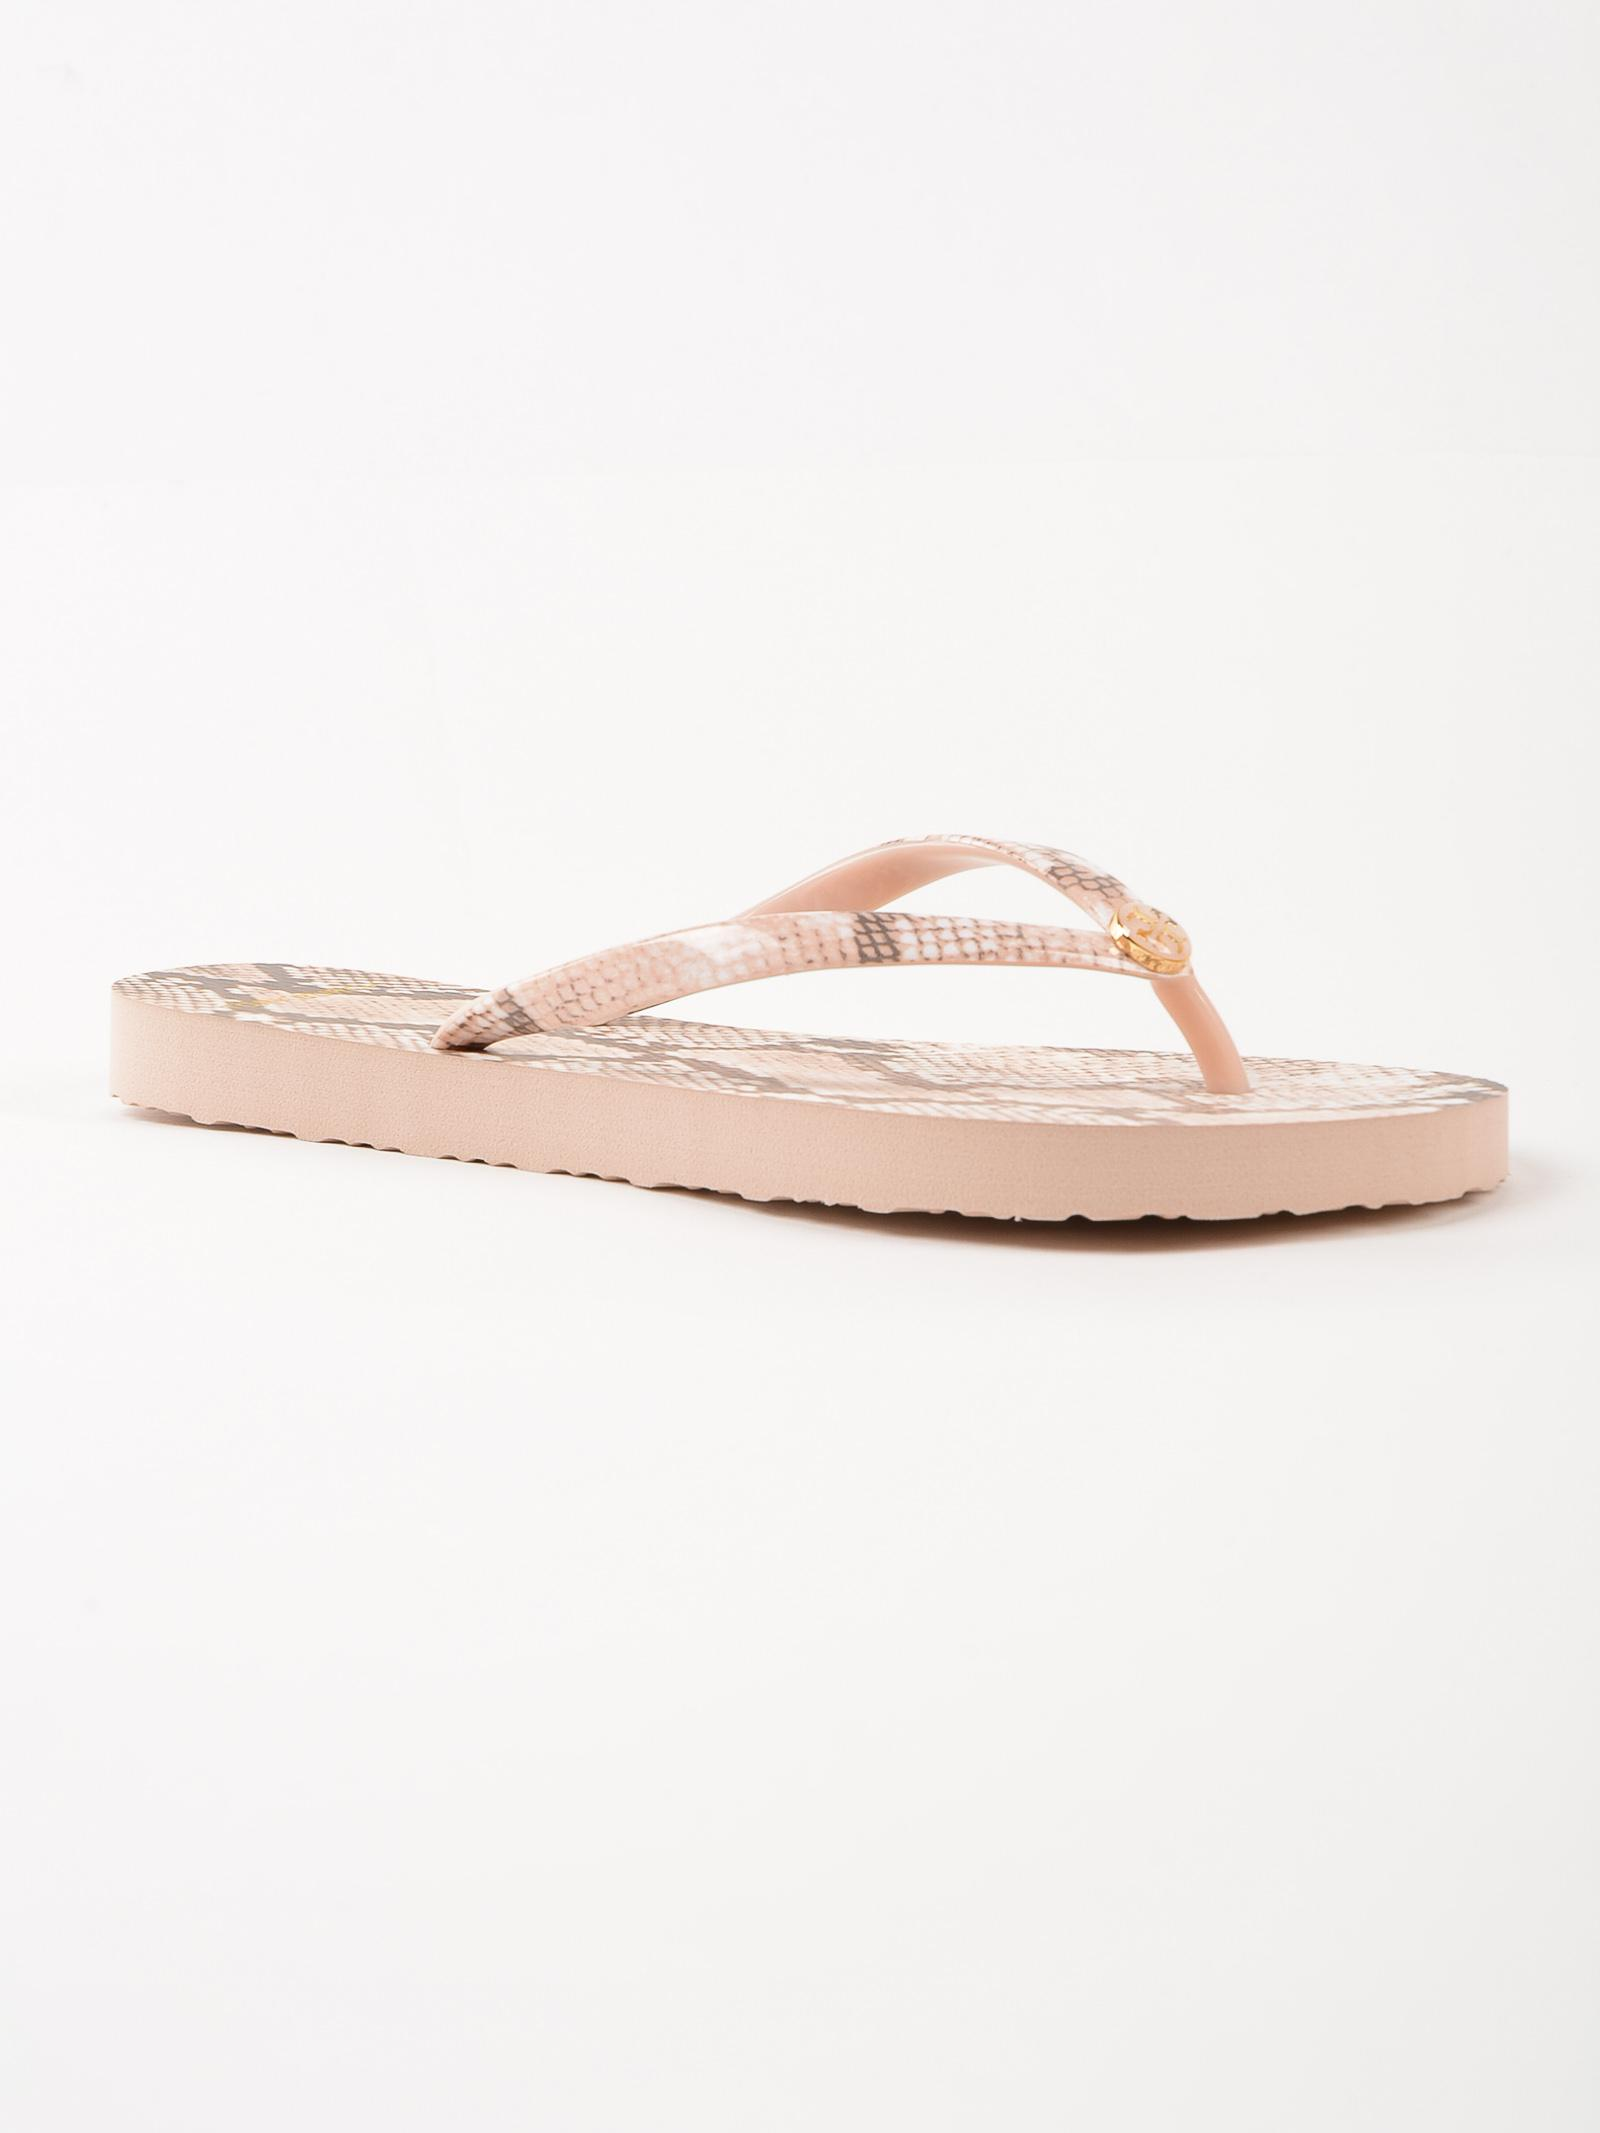 Tory Burch Printed Thin Flip Flop In Pink - Lyst-5059